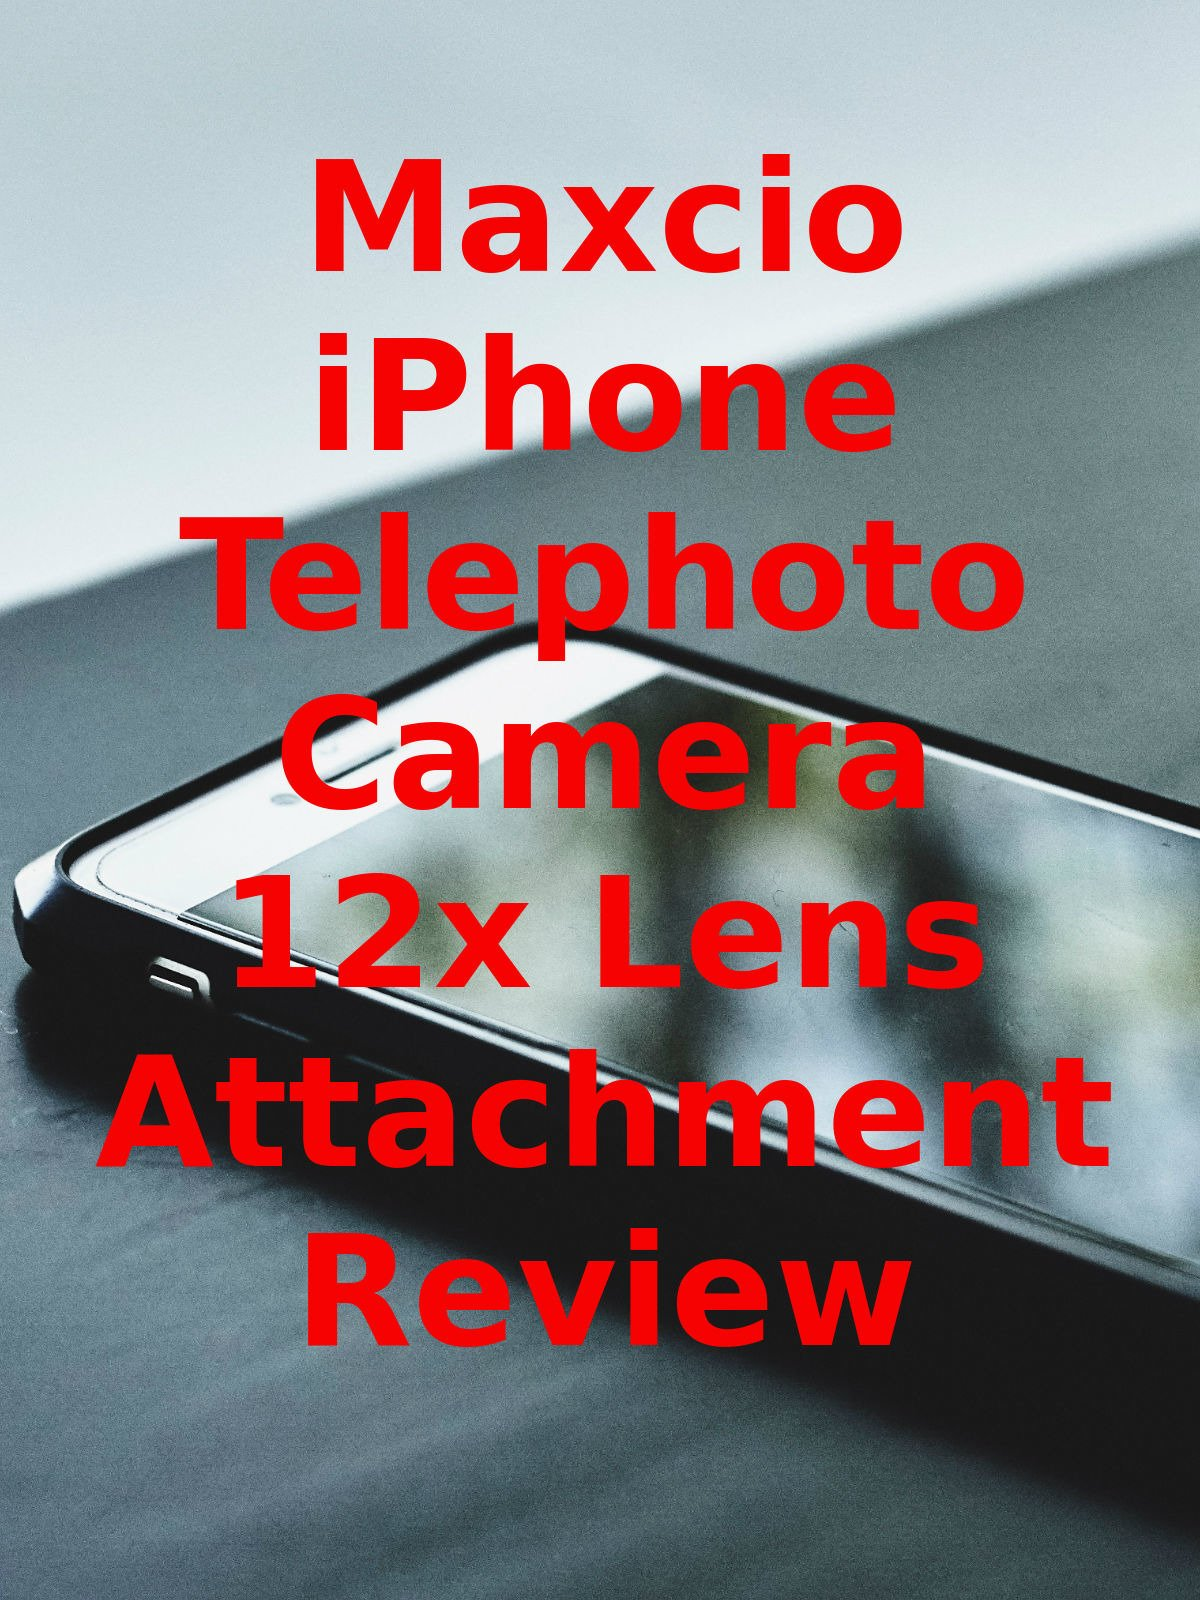 Review: Maxcio iPhone Telephoto Camera 12x Lens Attachment Review on Amazon Prime Video UK